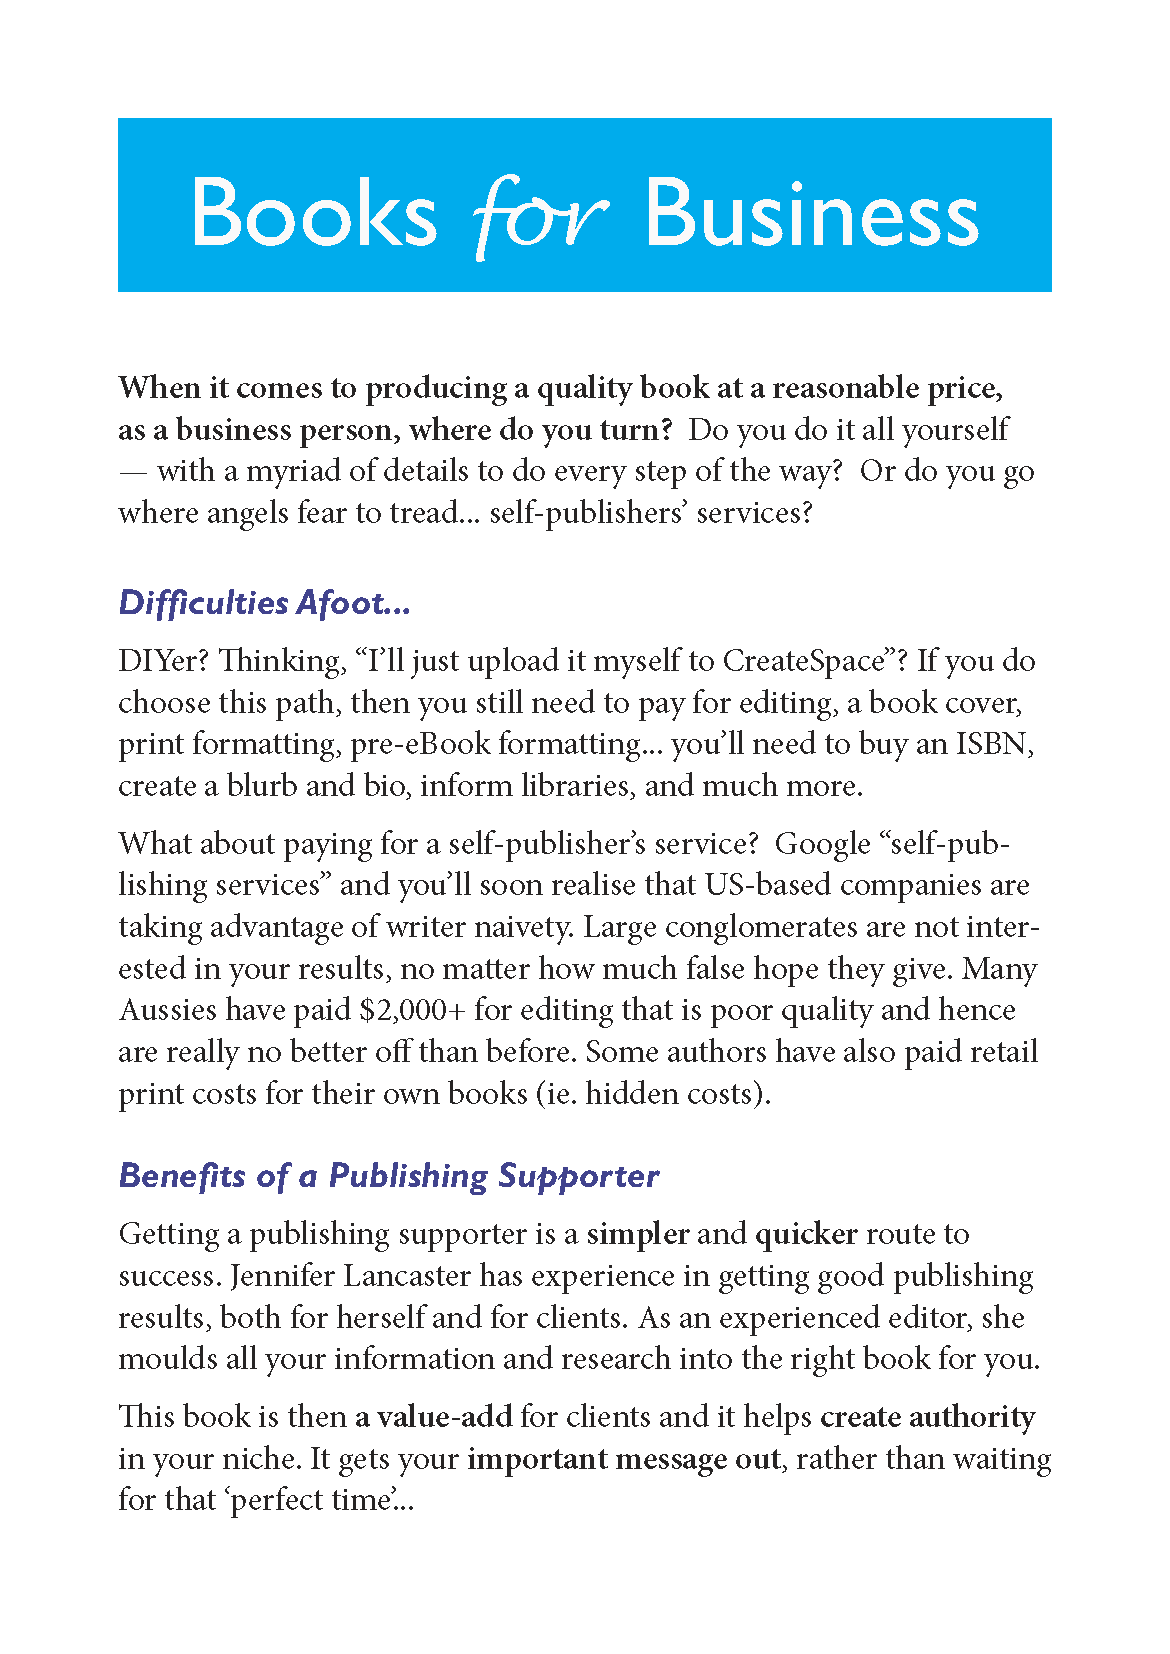 self-publishing for business